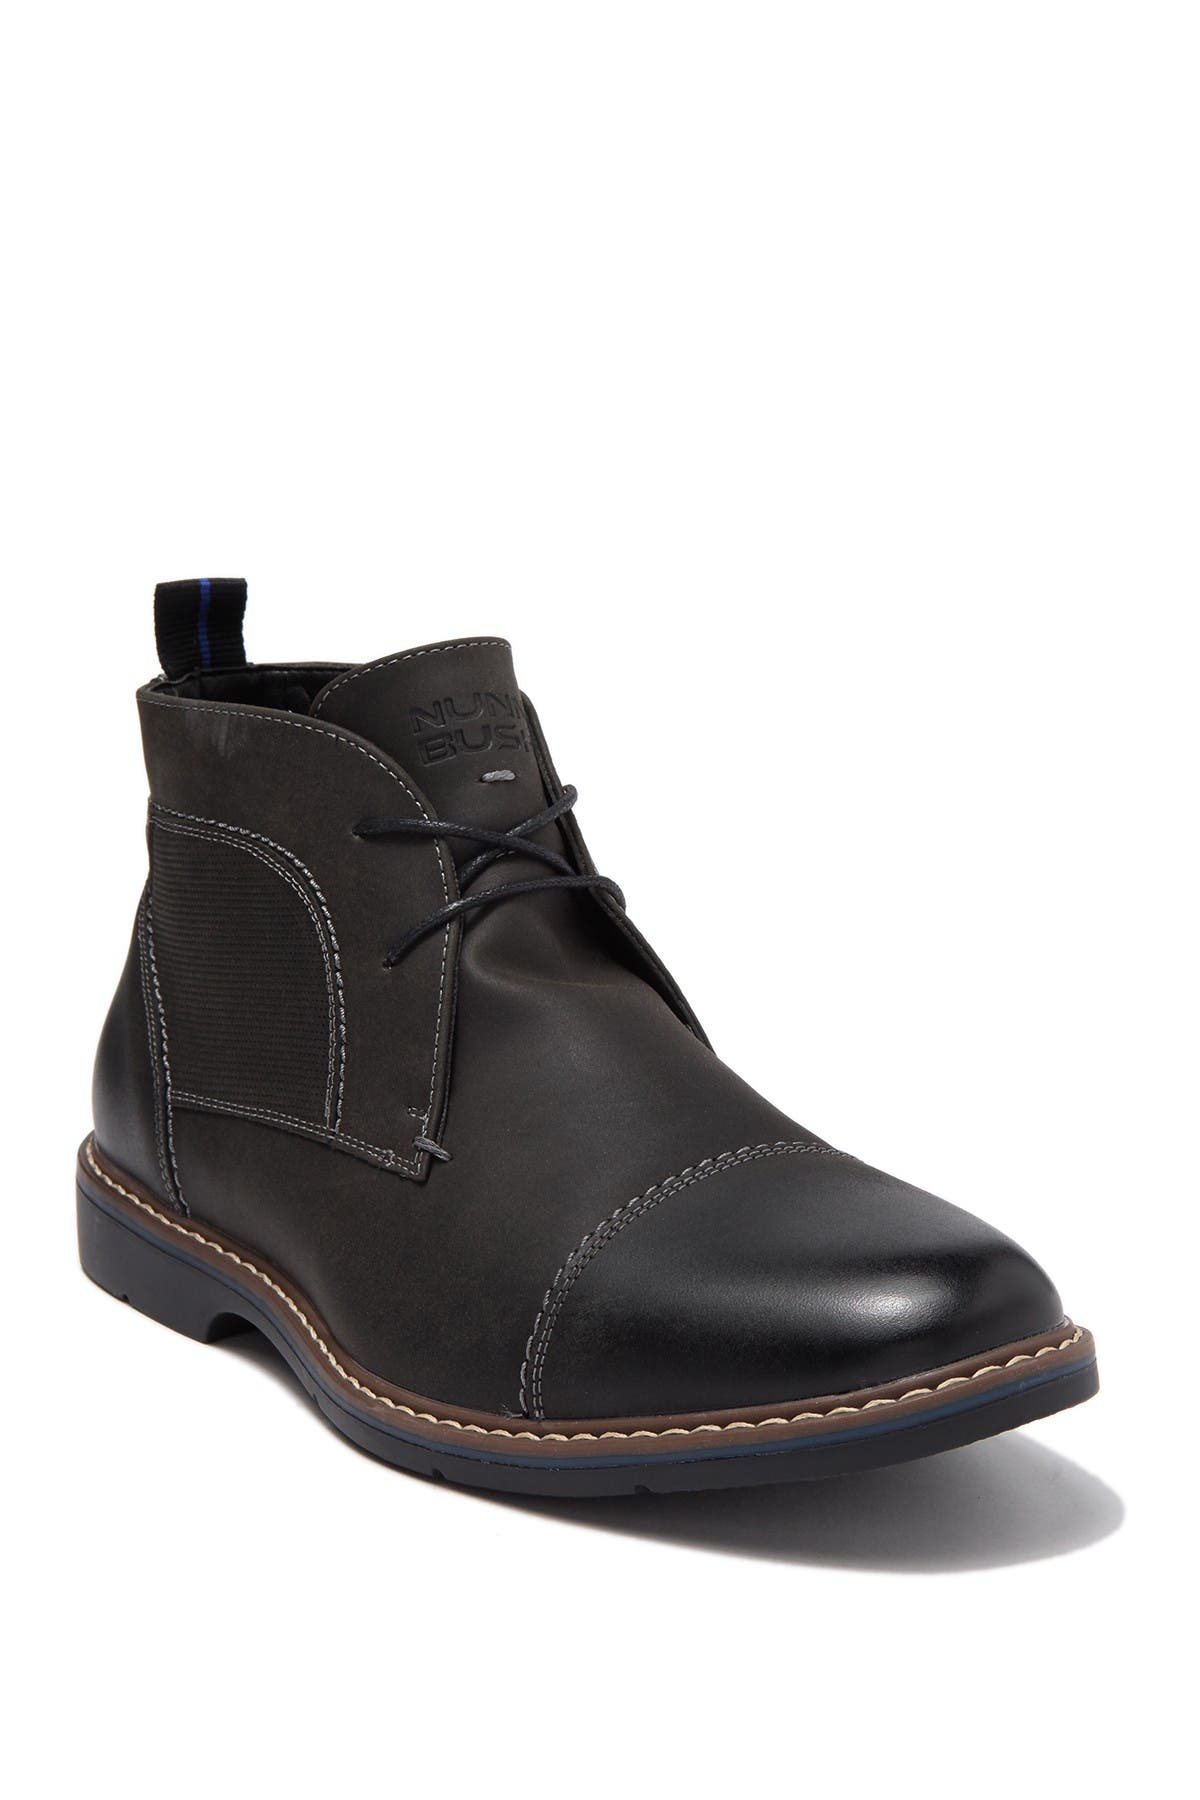 Image of NUNN BUSH Oakland Cap Toe Casual Chukka Boot